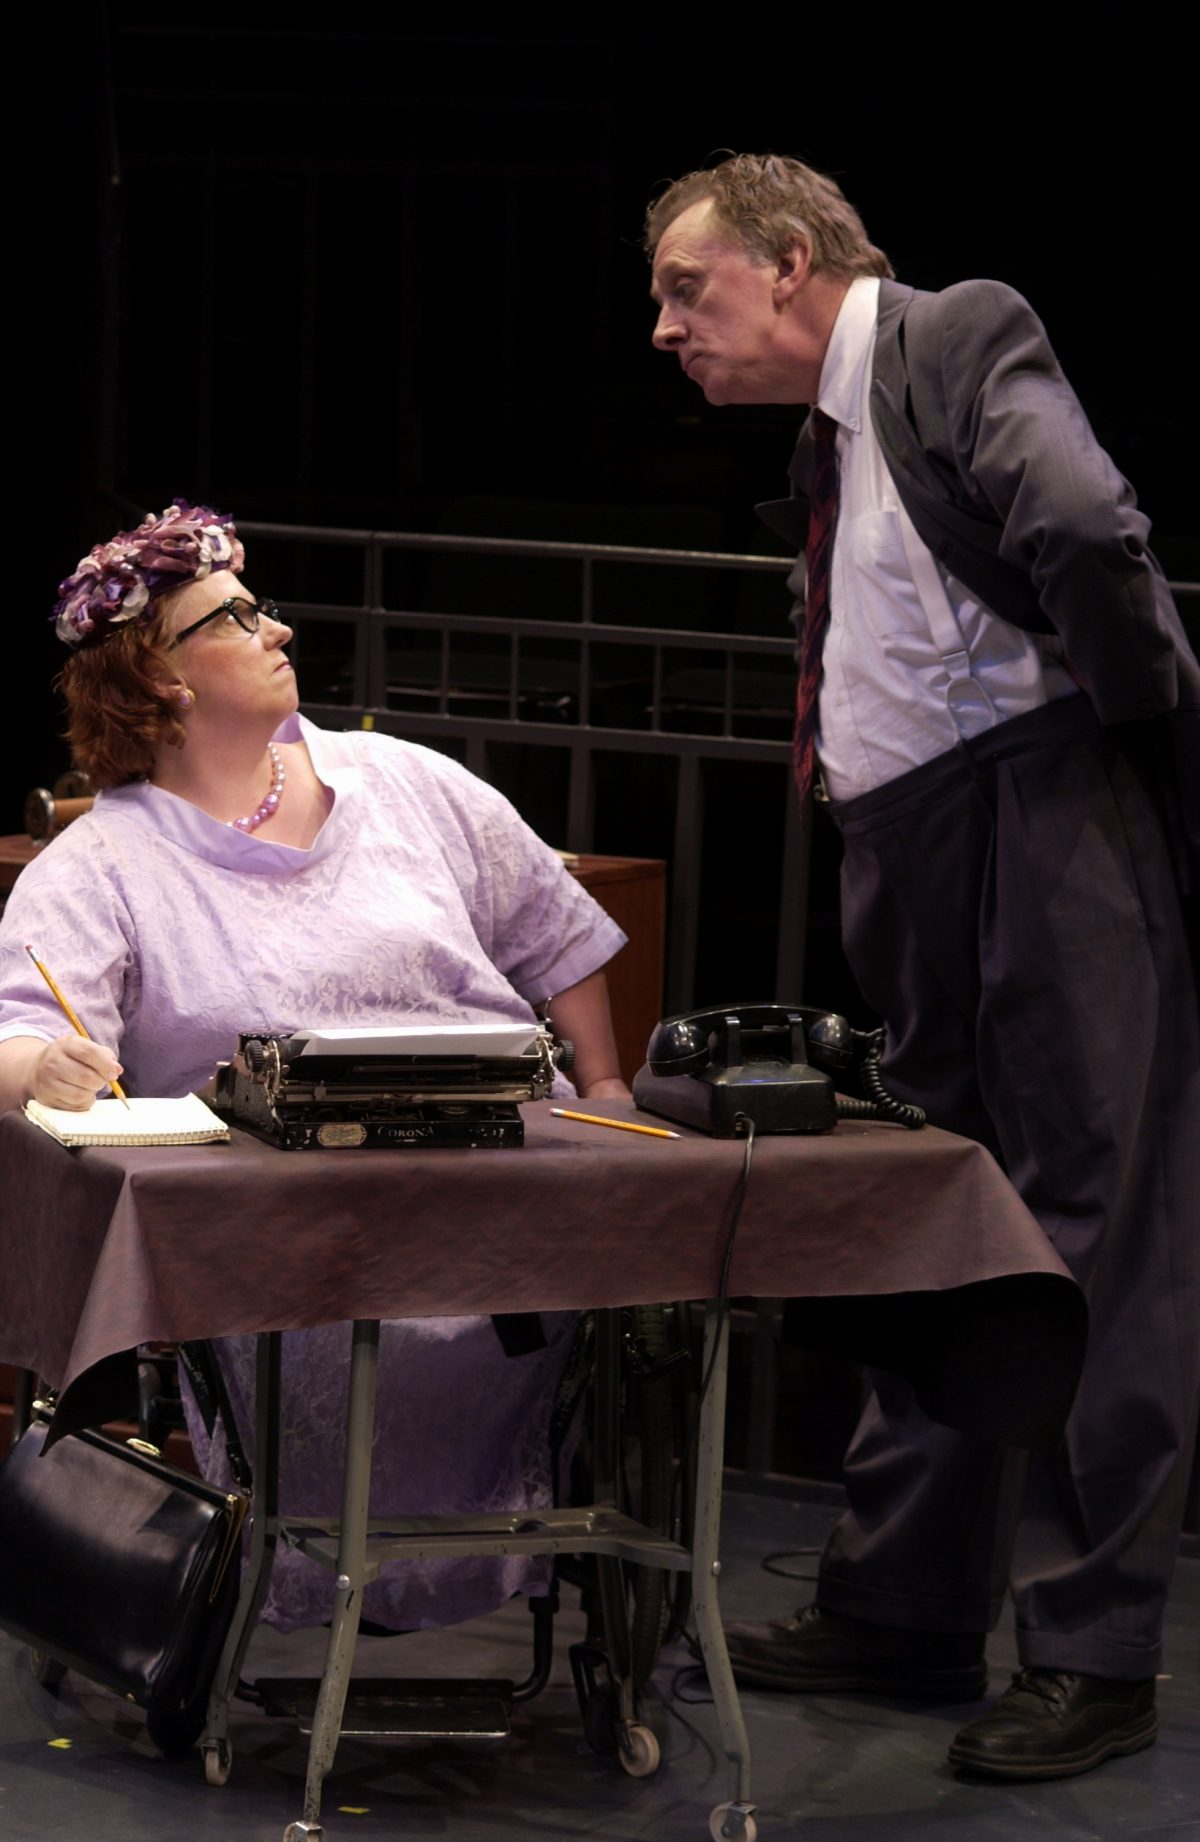 Woman at desk behind a typewriter with man in suit standing over her.